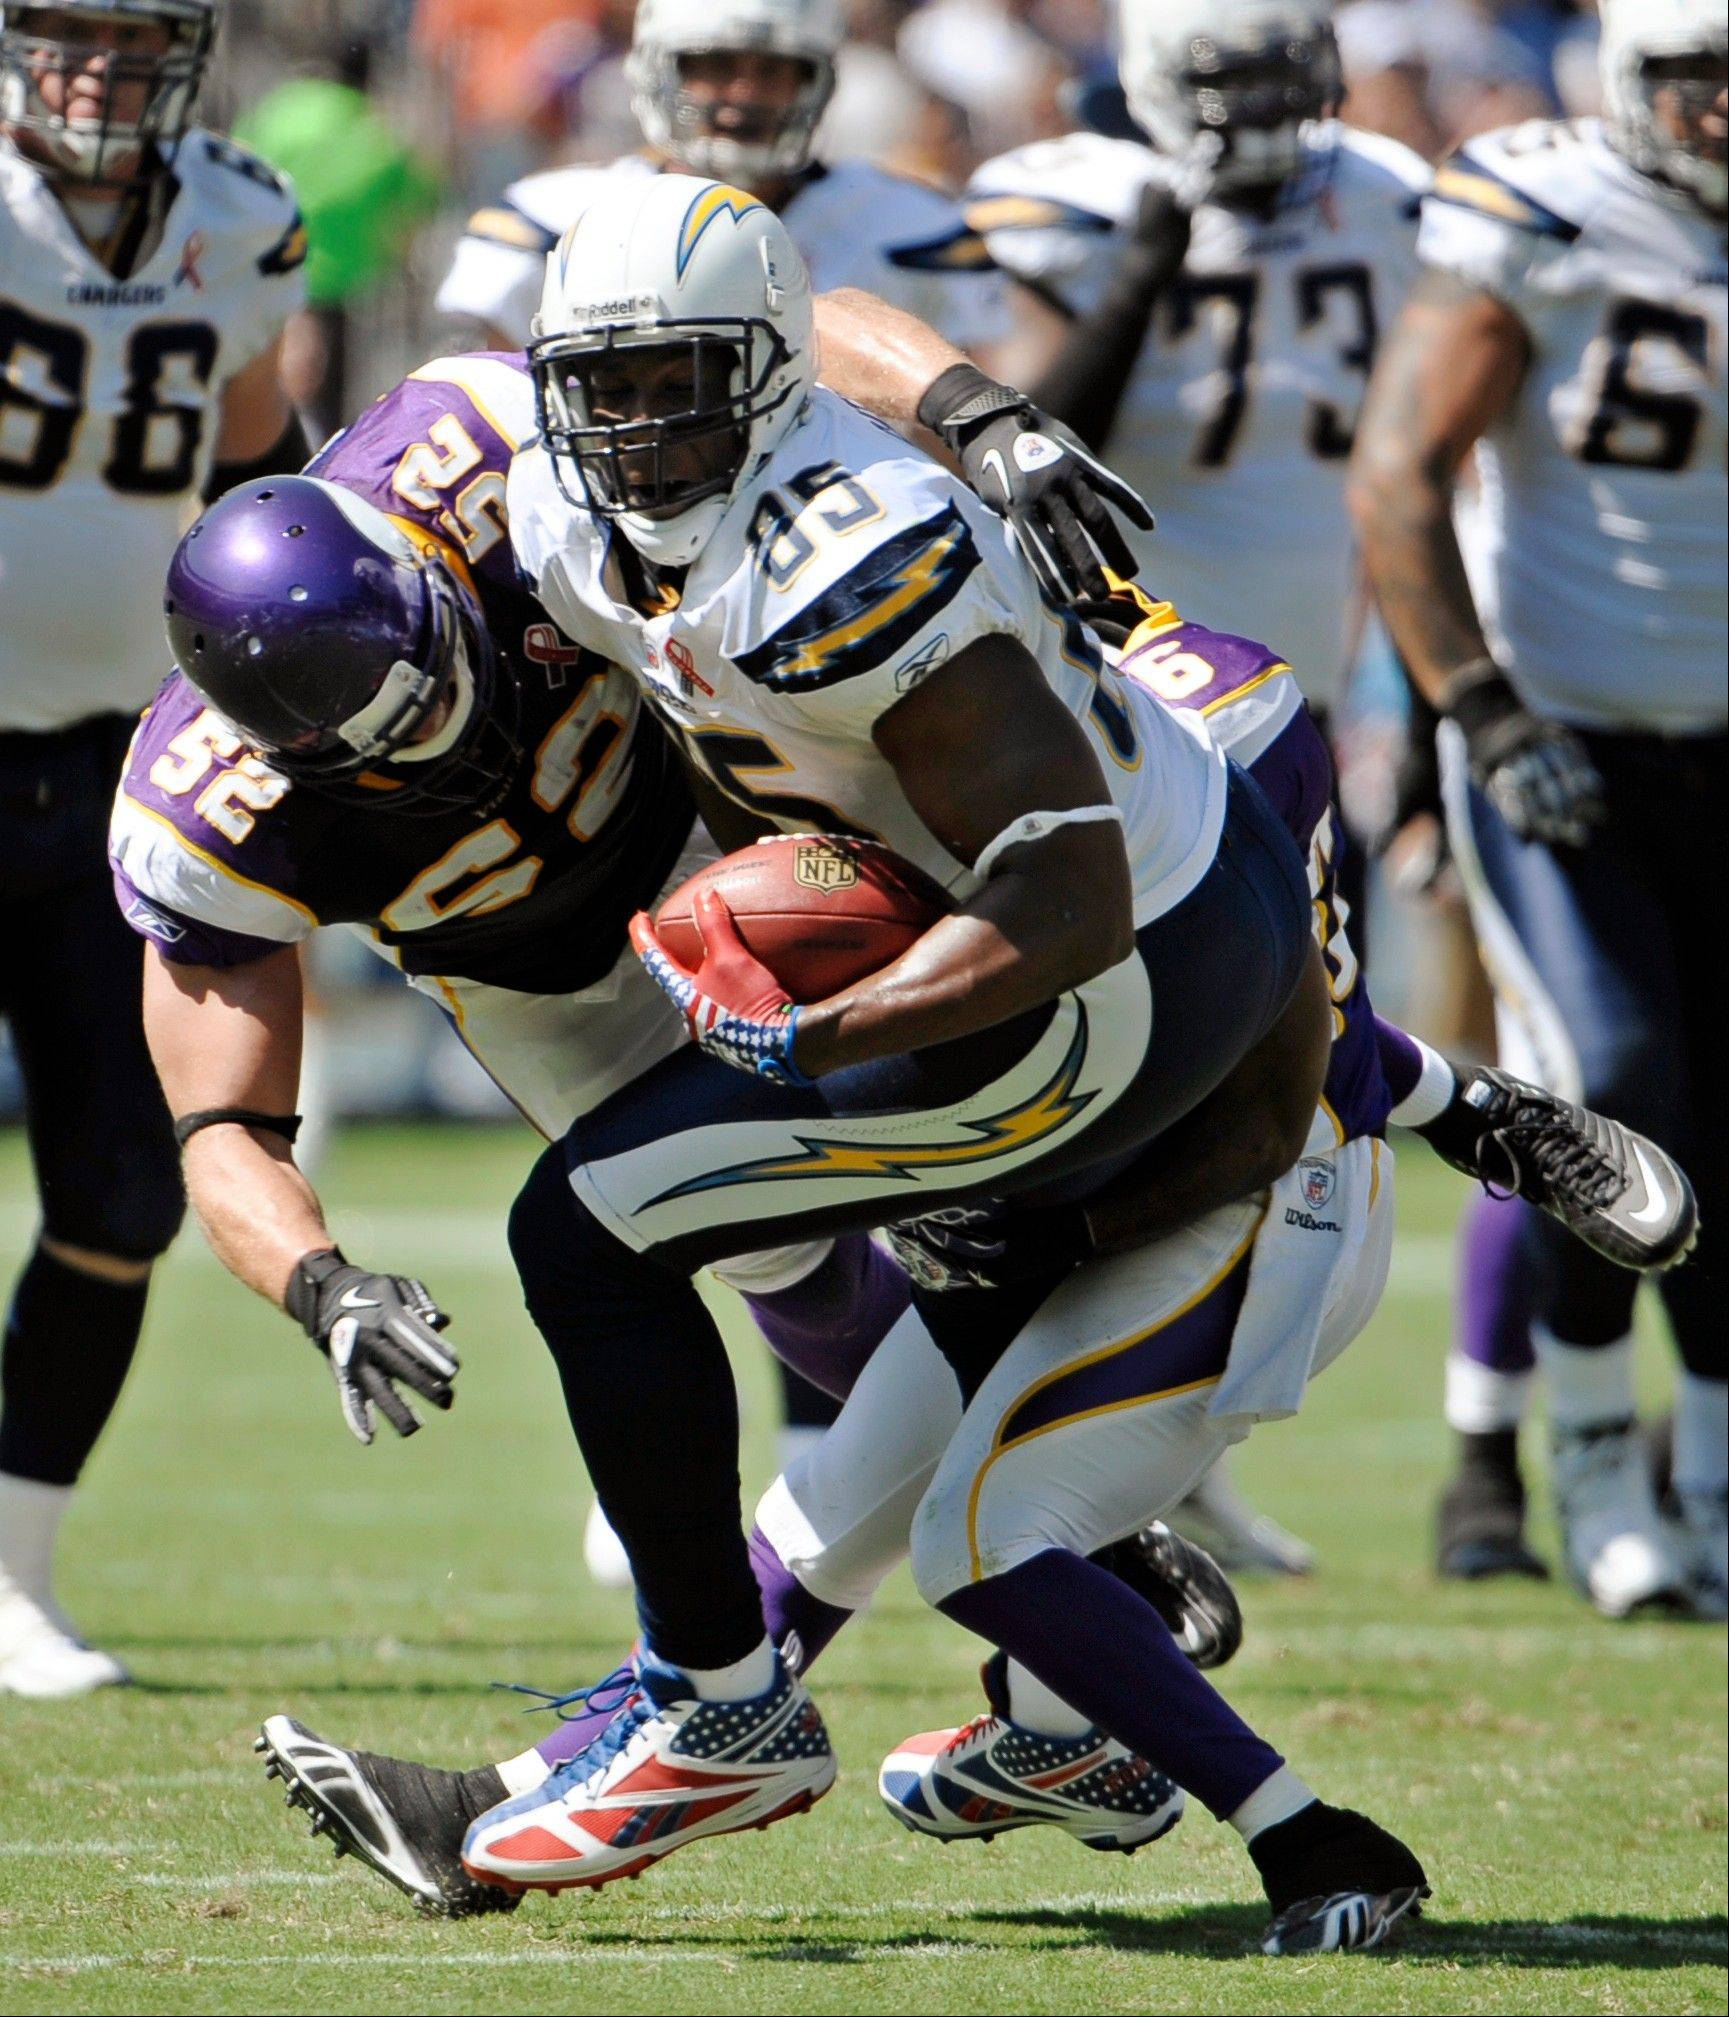 Minnesota Vikings linebacker Chad Greenway stops San Diego Chargers tight end Antonio Gates during the first half of a NFL football game Sunday, Sept. 11, 2011, in San Diego.